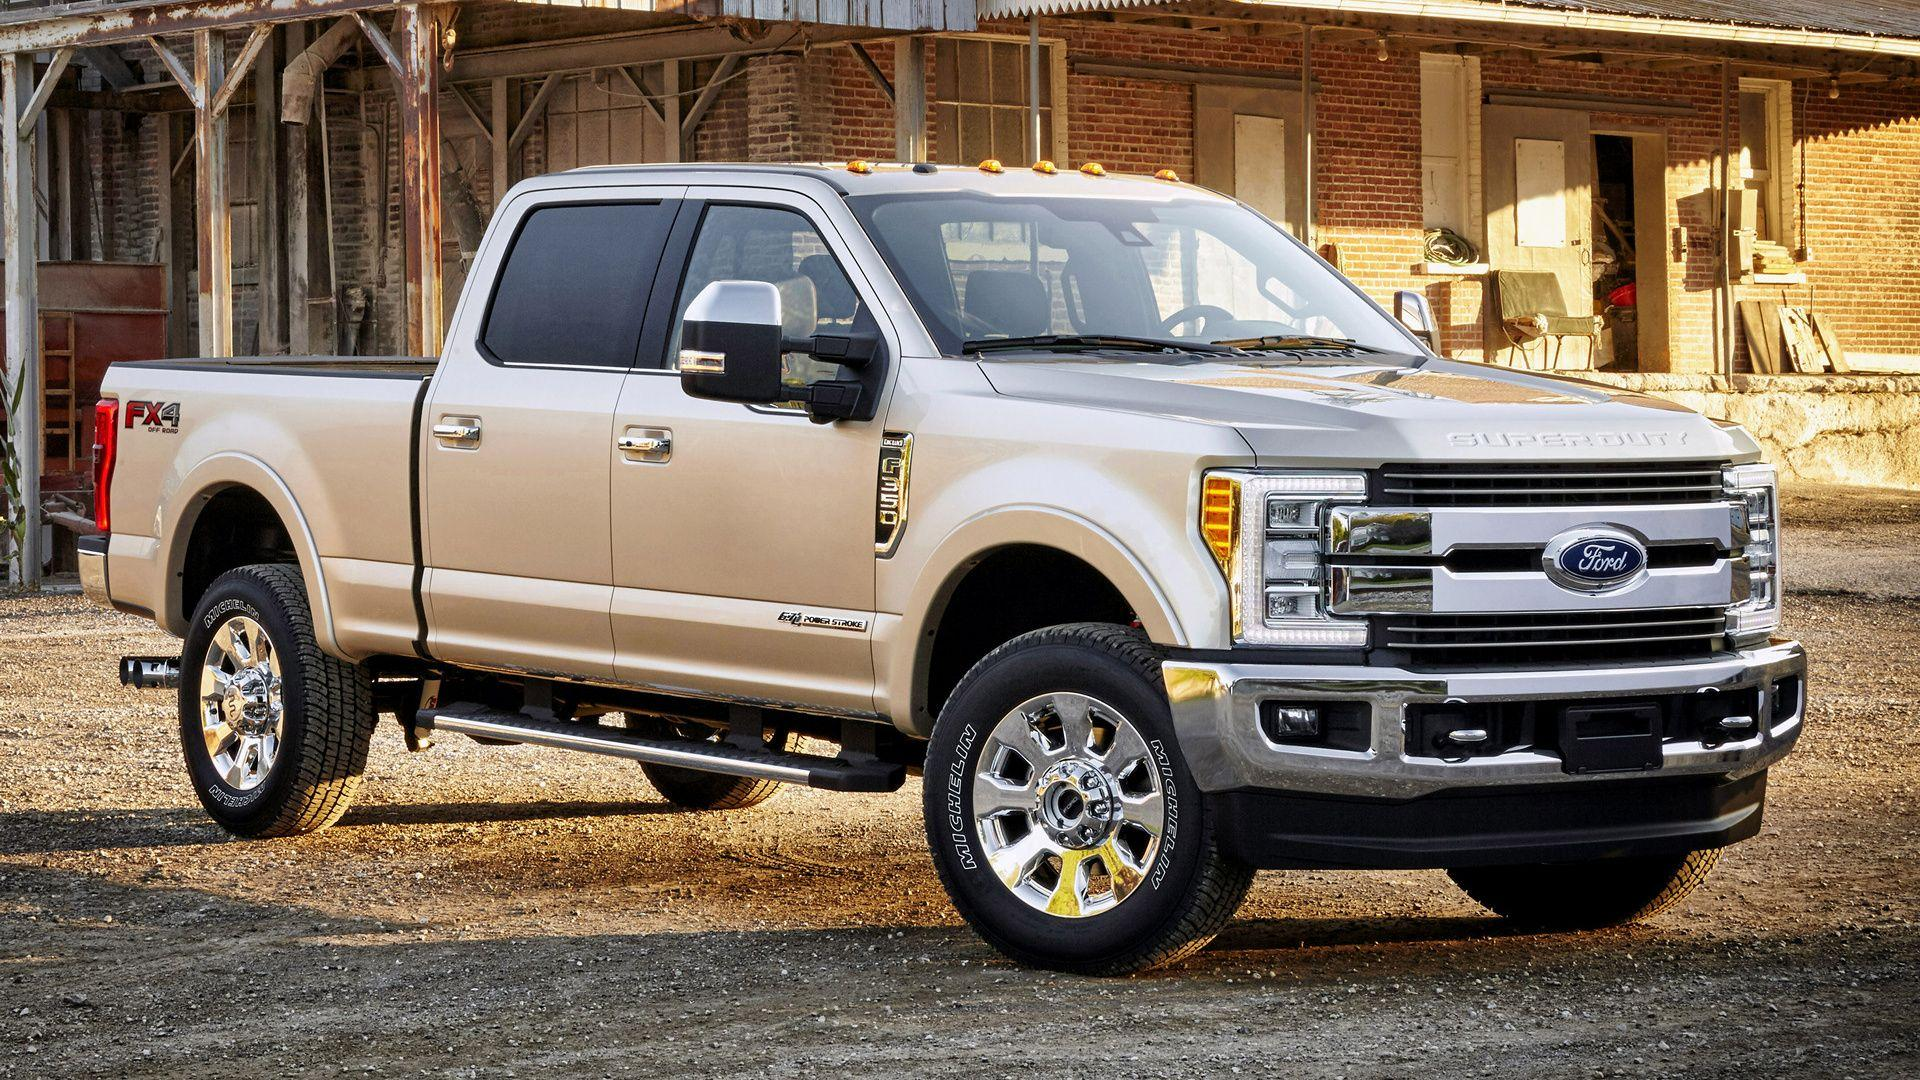 Wallpaper Blink - Best of Ford Super Duty Wallpapers HD for Android ...